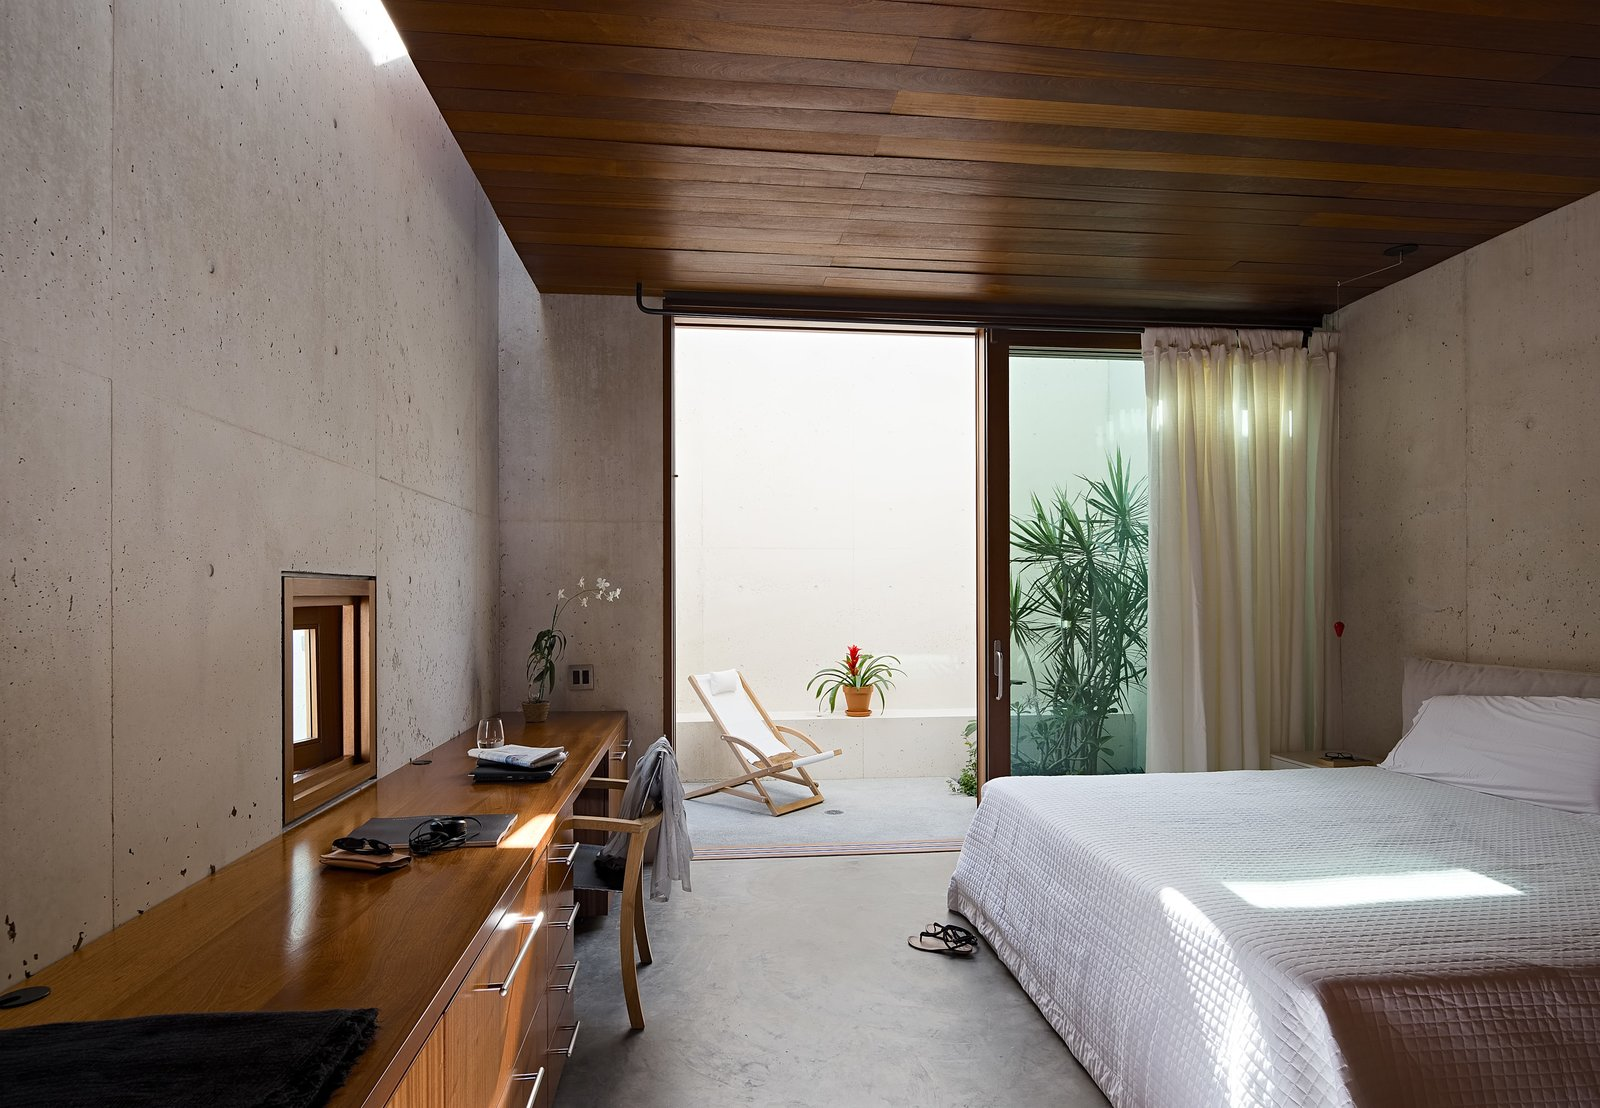 Even the bedrooms integrate the outdoor spaces into the design.